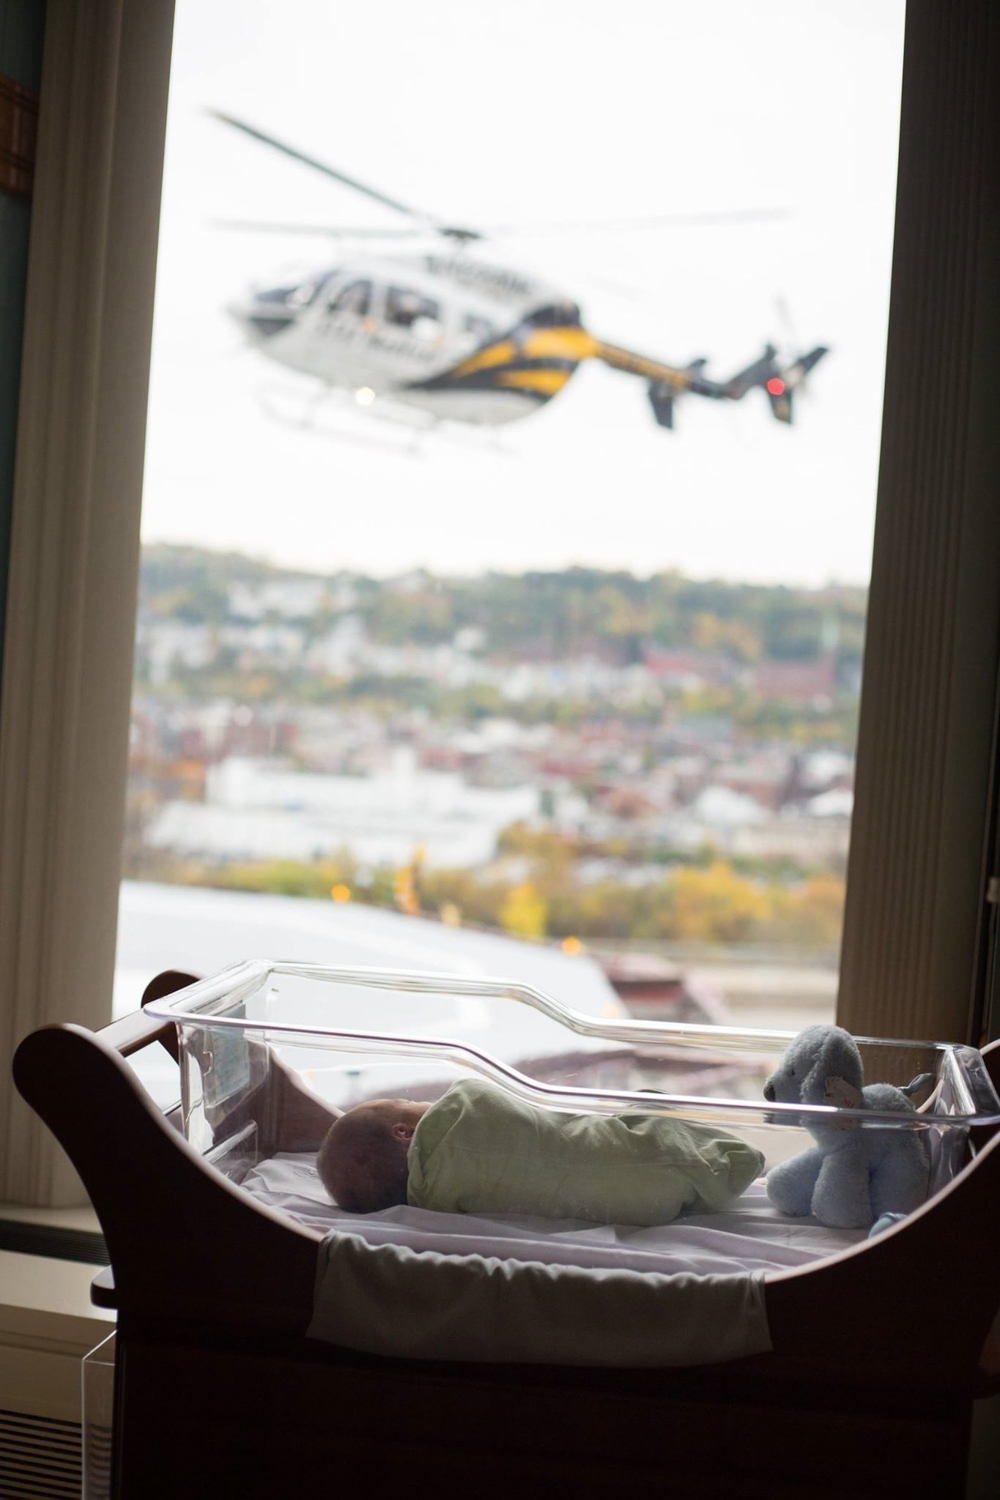 fresh48-helicopter-newborn.jpg